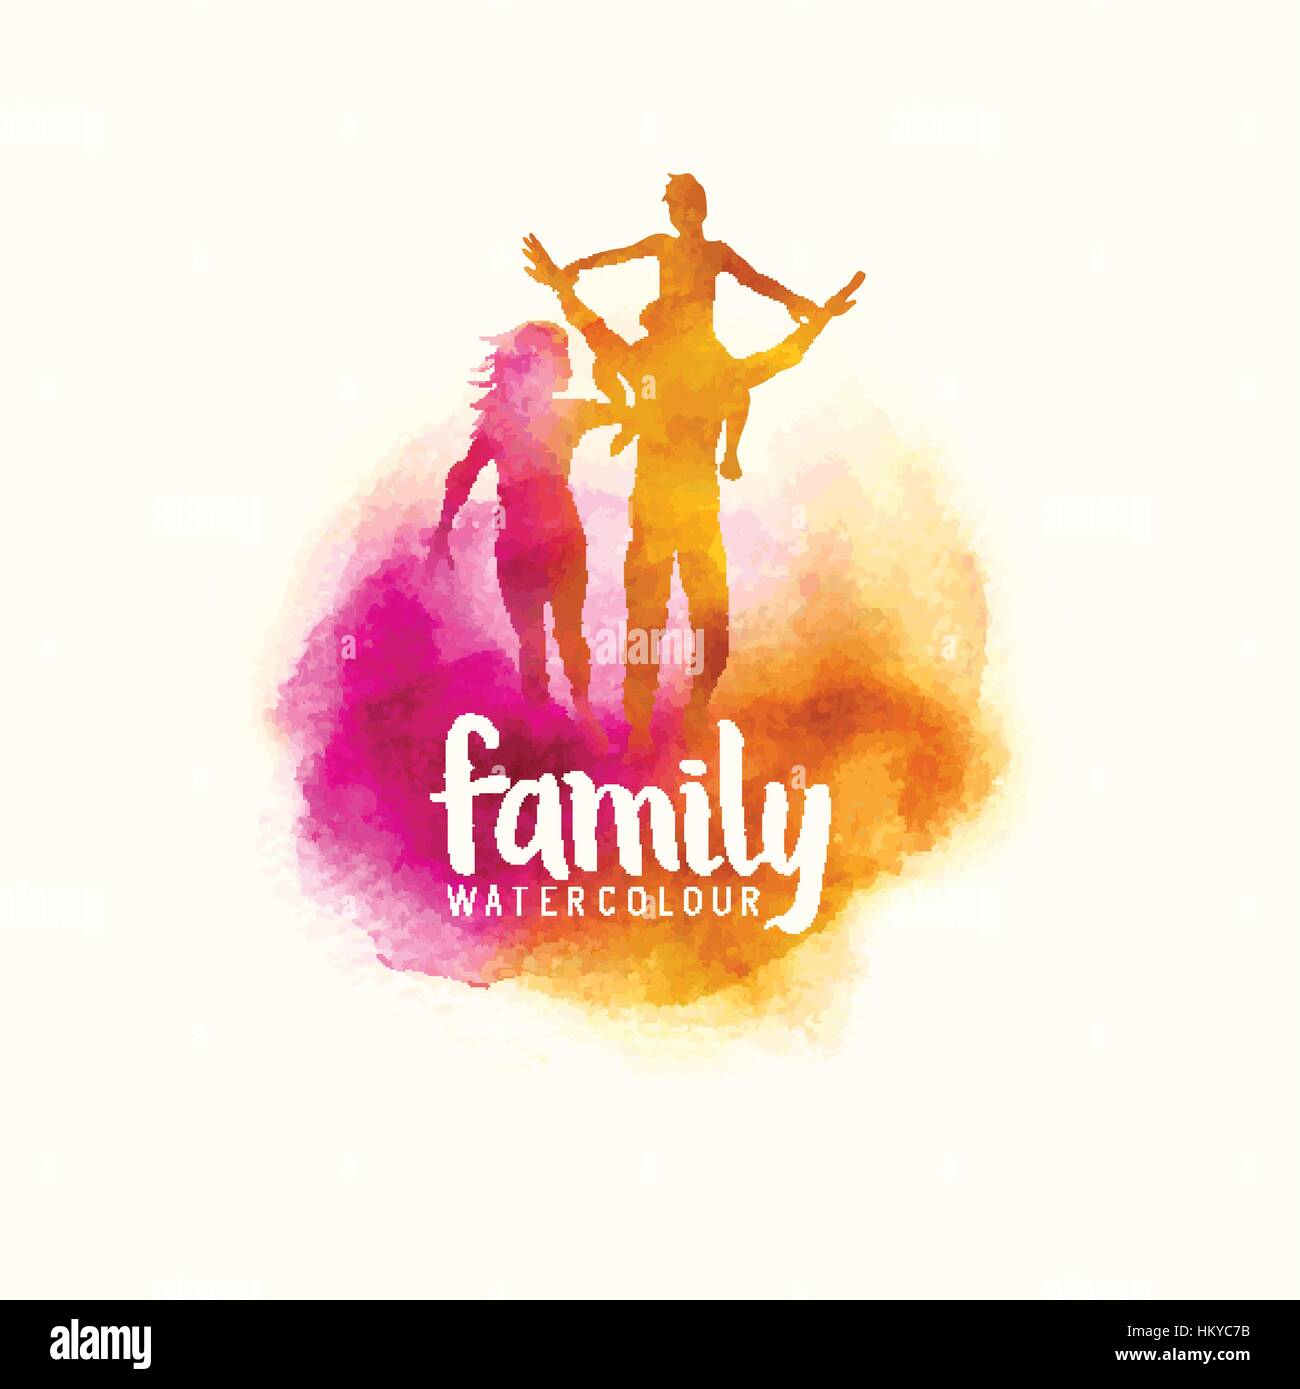 watercolour style family, Parents having fun with their child. vector illustration - Stock Vector